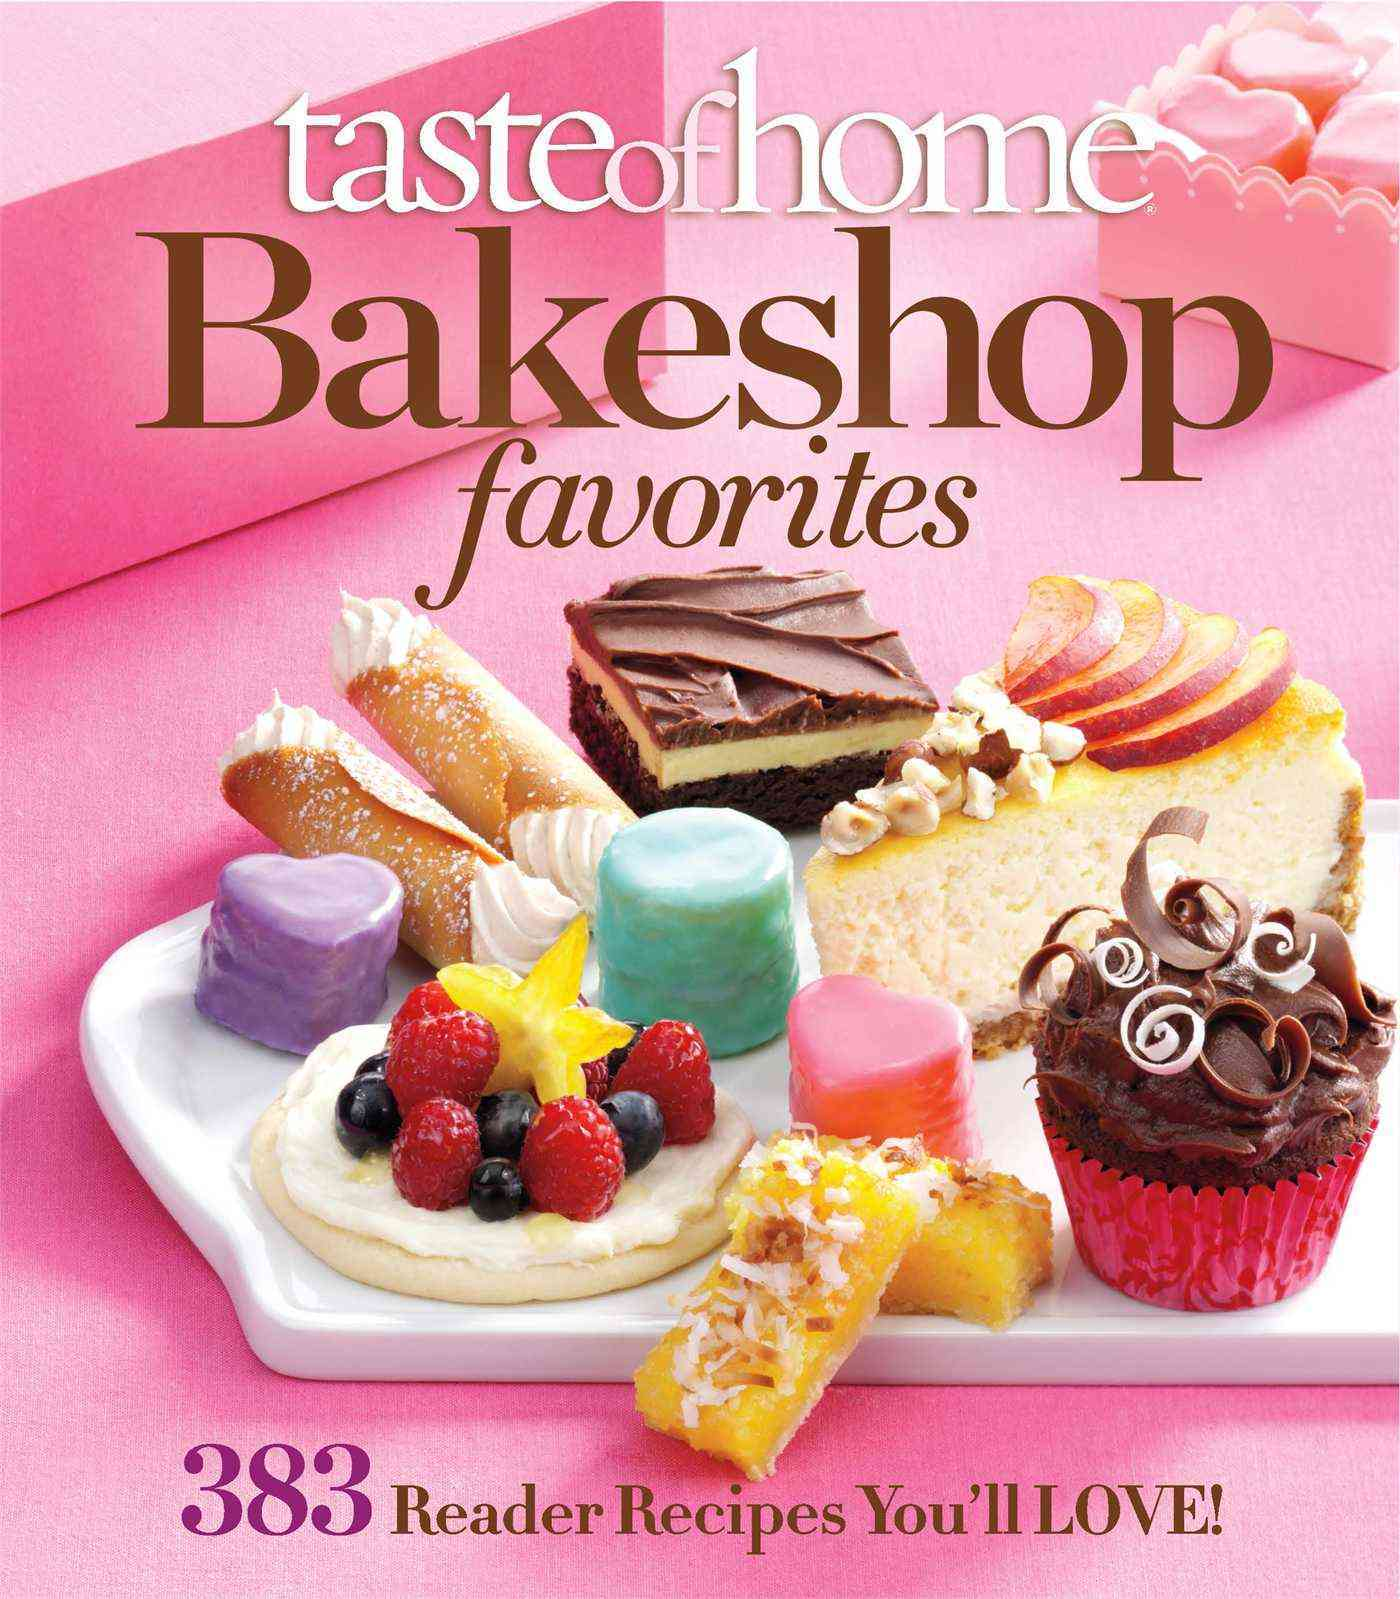 Taste of Home Bake Shop favorites (Paperback) - Thumbnail 0